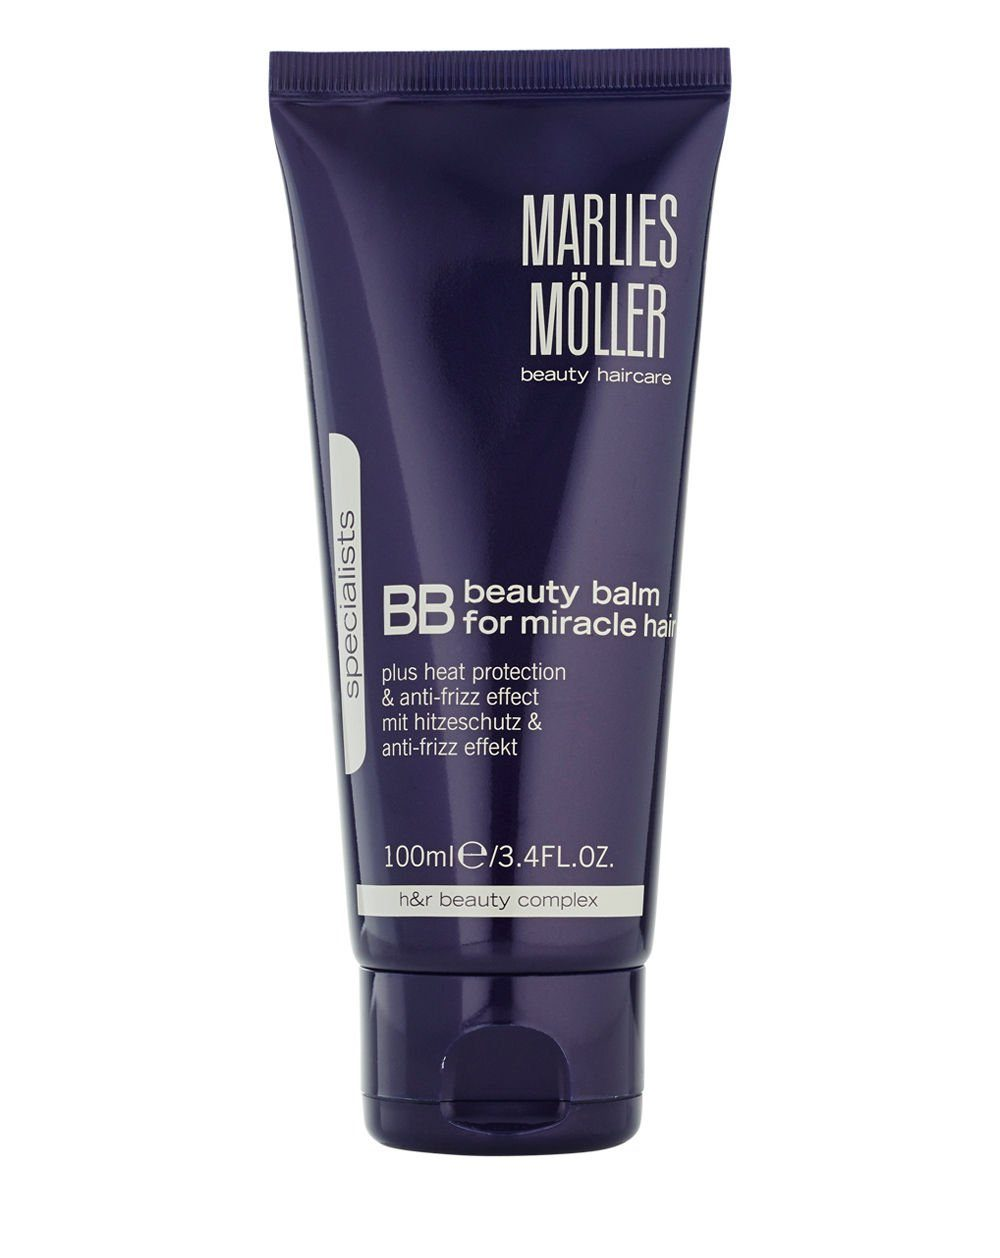 Marlies Möller Haarcreme »Styling Bb Beauty Balm For Miracle Hair«